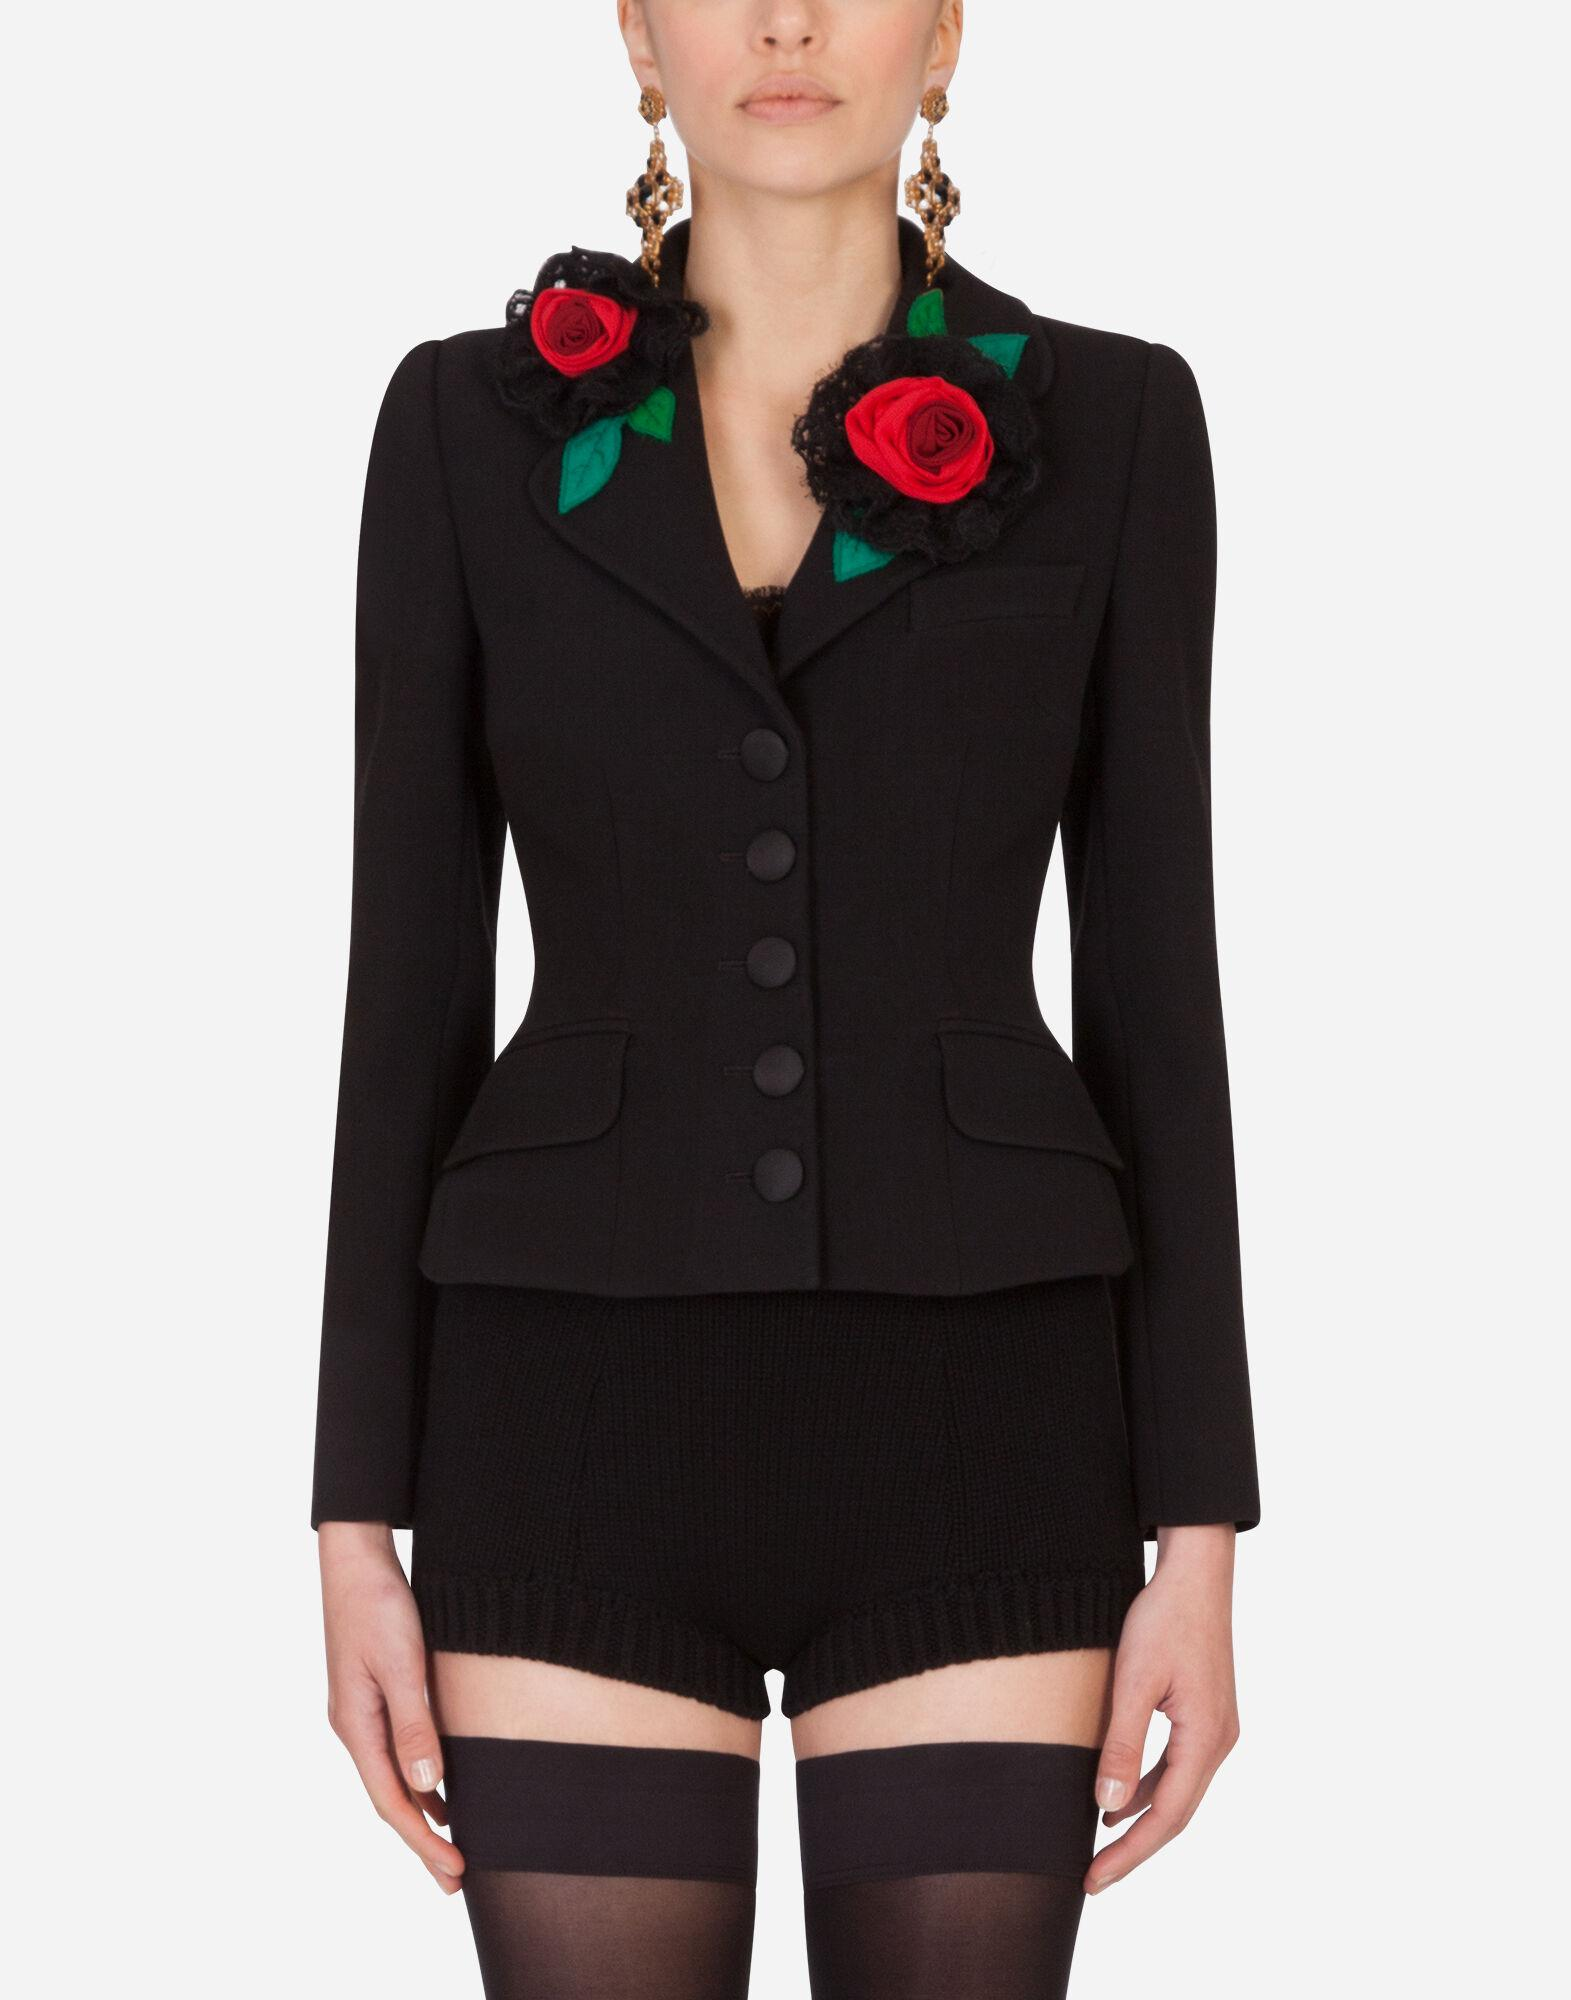 Short single-breasted Dolce jacket with rose appliqués